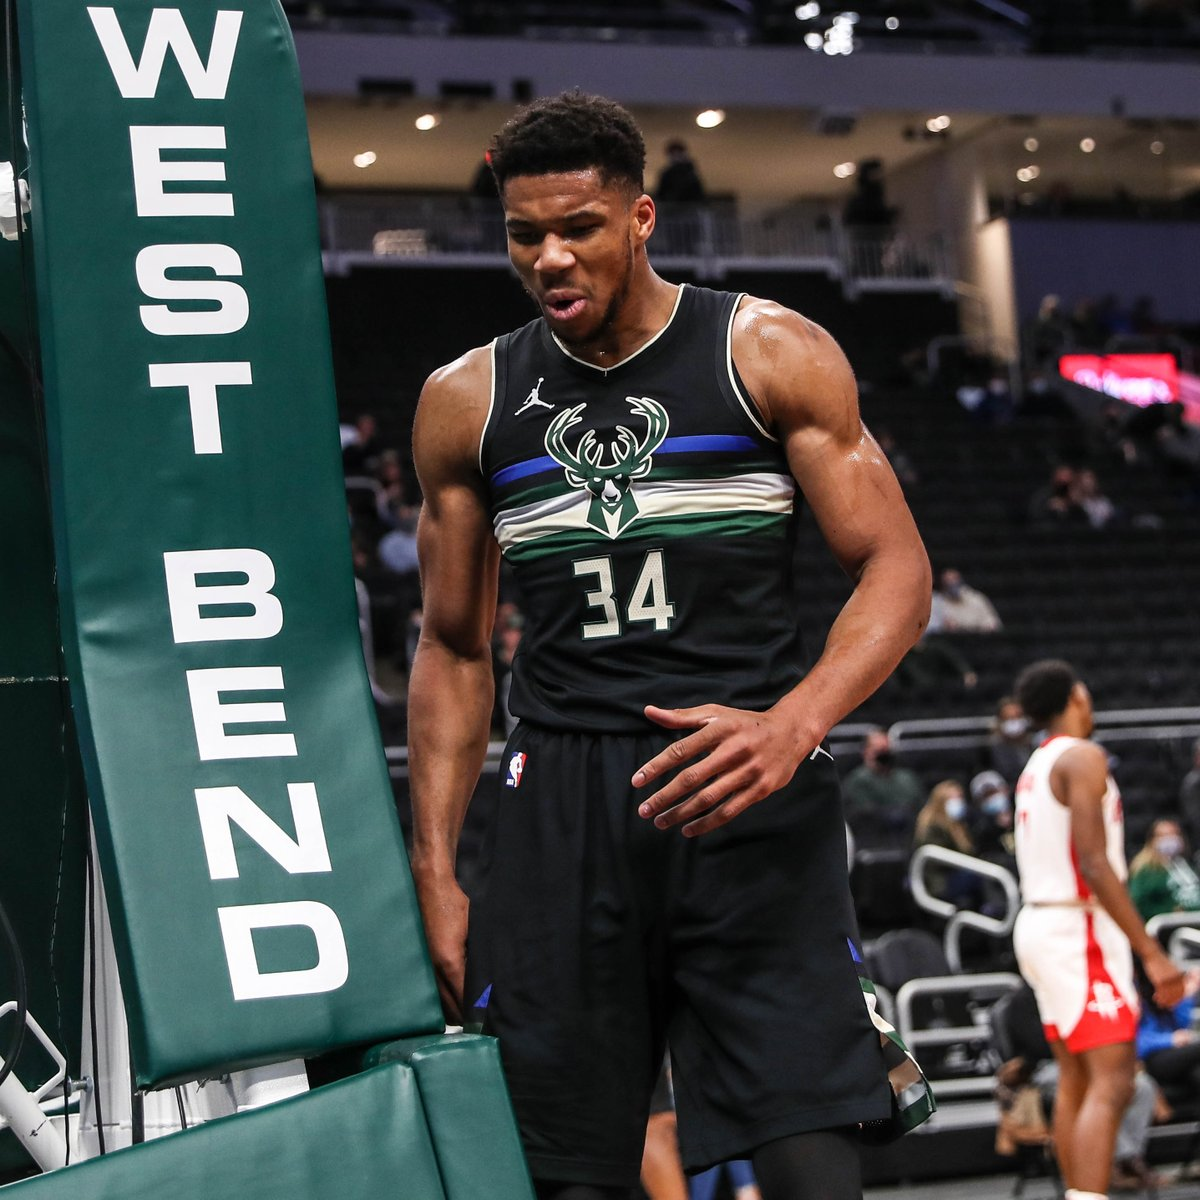 The Greek Freak with another double-double:  17 PTS | 11 REB | 7 AST | 8/11 FG https://t.co/C0SxYlyYzi